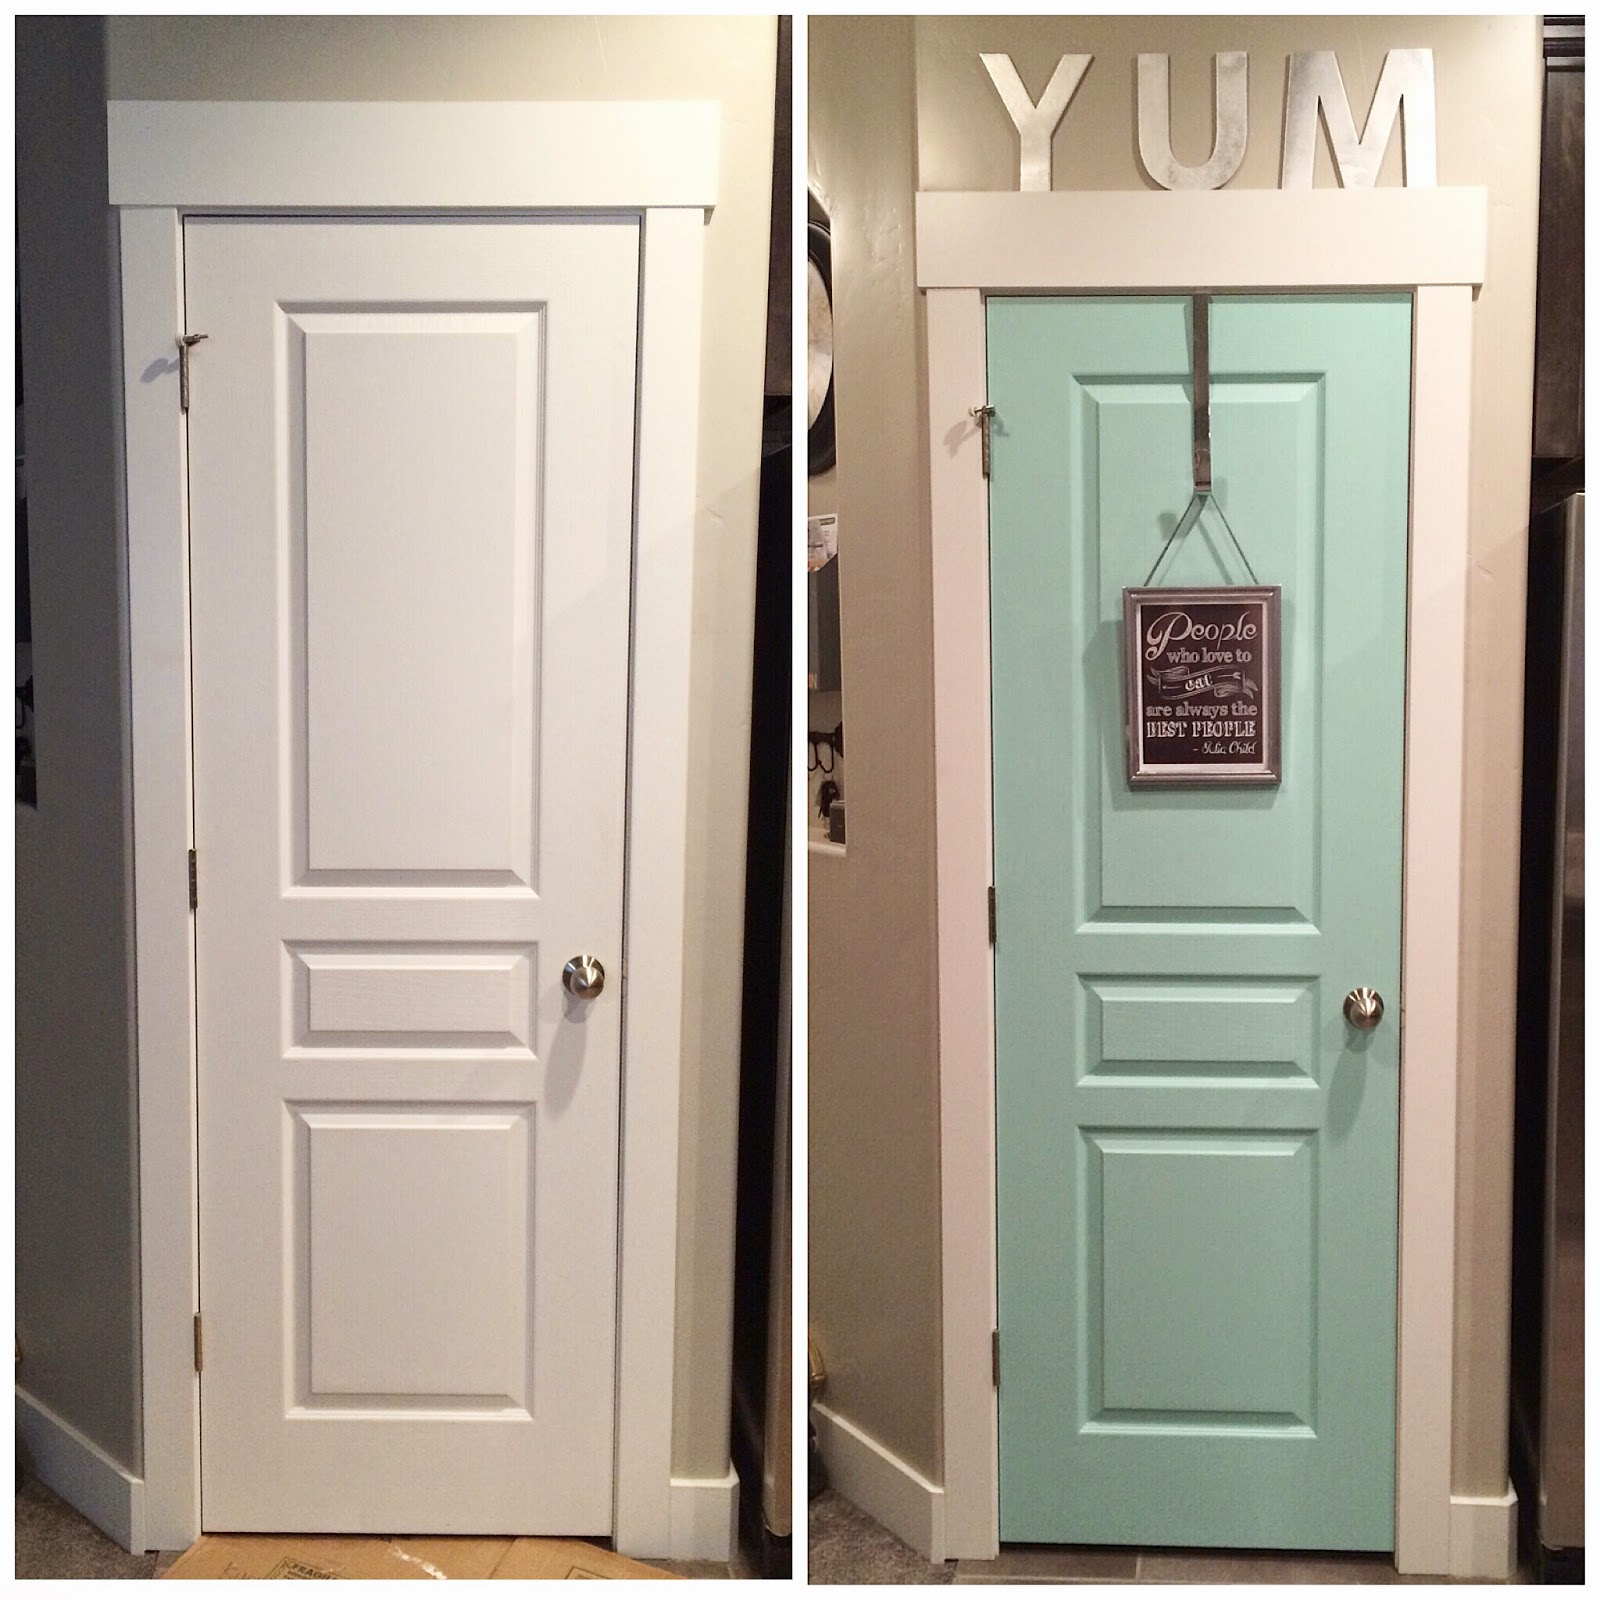 I Like These Cabinet Door Pantry Etc Colors For The: Home With Carissa: On The Cheap: Ten Dollar Pantry Door